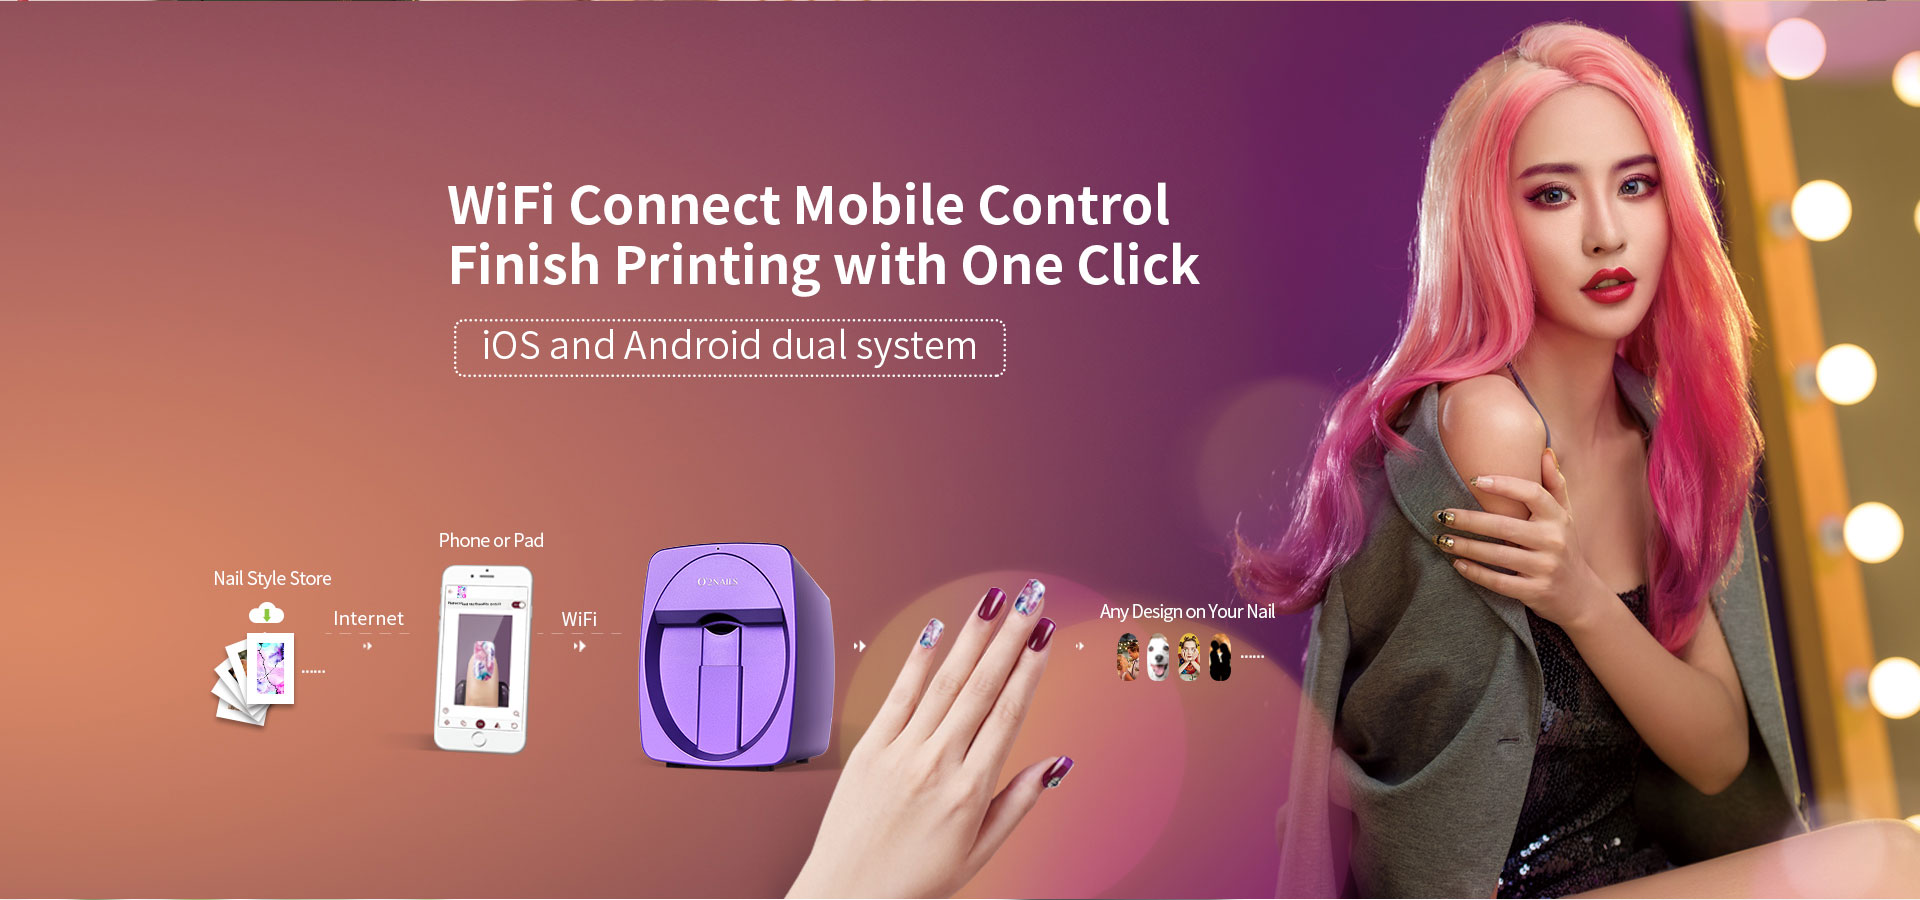 wifi connect mobile control finish printing with one click